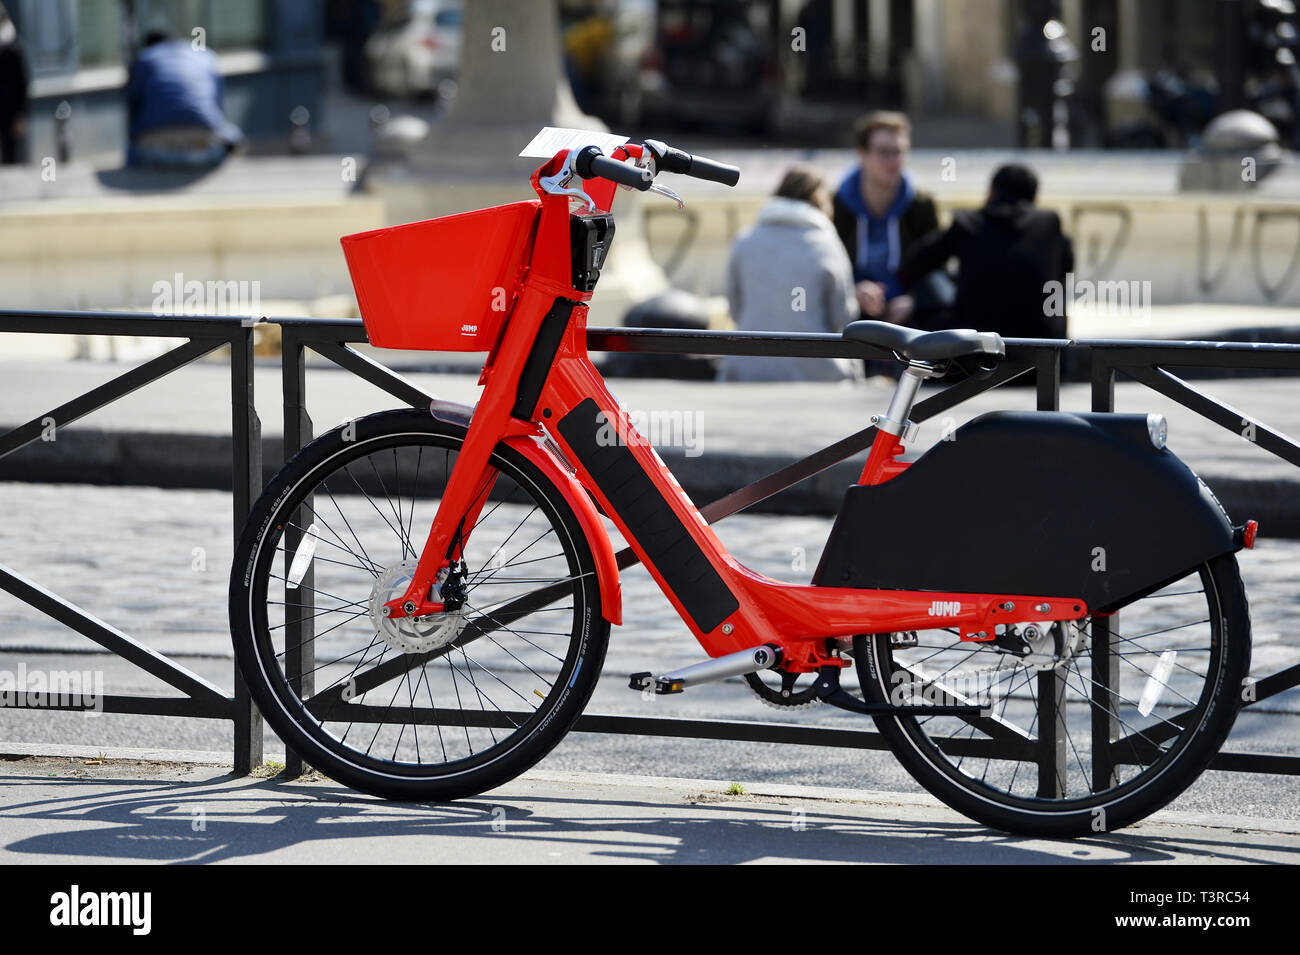 500 of Jump bikes and 500 scooters have been deployed in